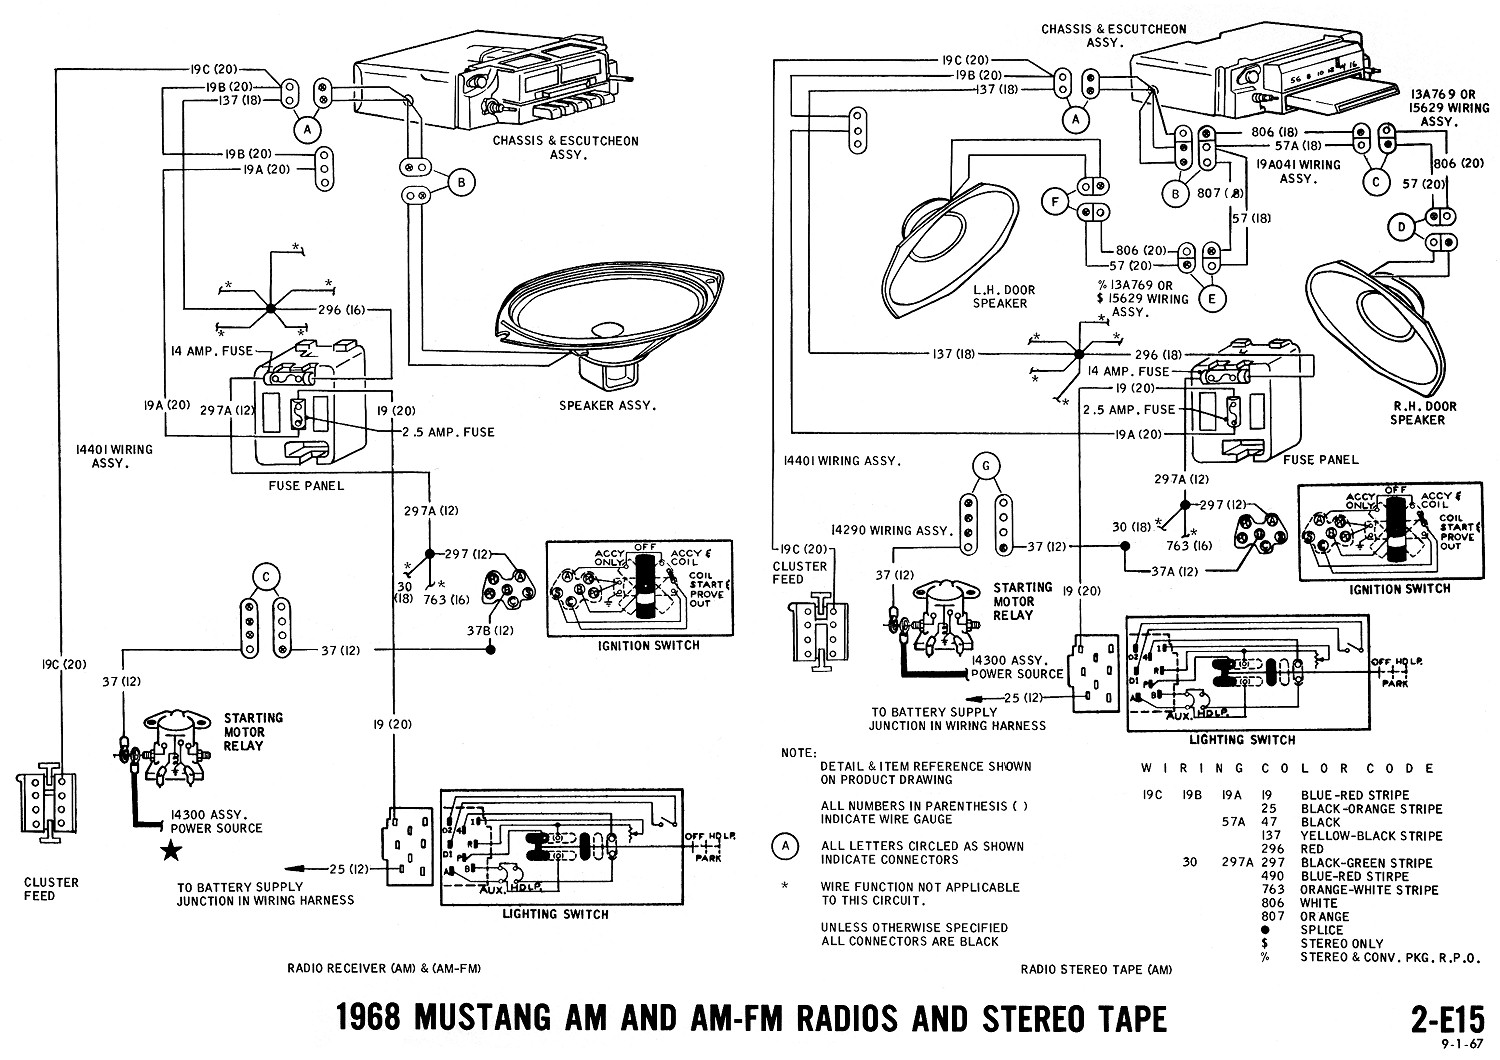 T10319528 1978 ford 460 together with T4290999 Need vacuum hose diagram 2001 ford besides 1098391 Oil Pump Location And Replacement additionally Discussion C5237 ds553722 further Ford 4 2l V6 Engine Diagram. on ford 460 vacuum diagram